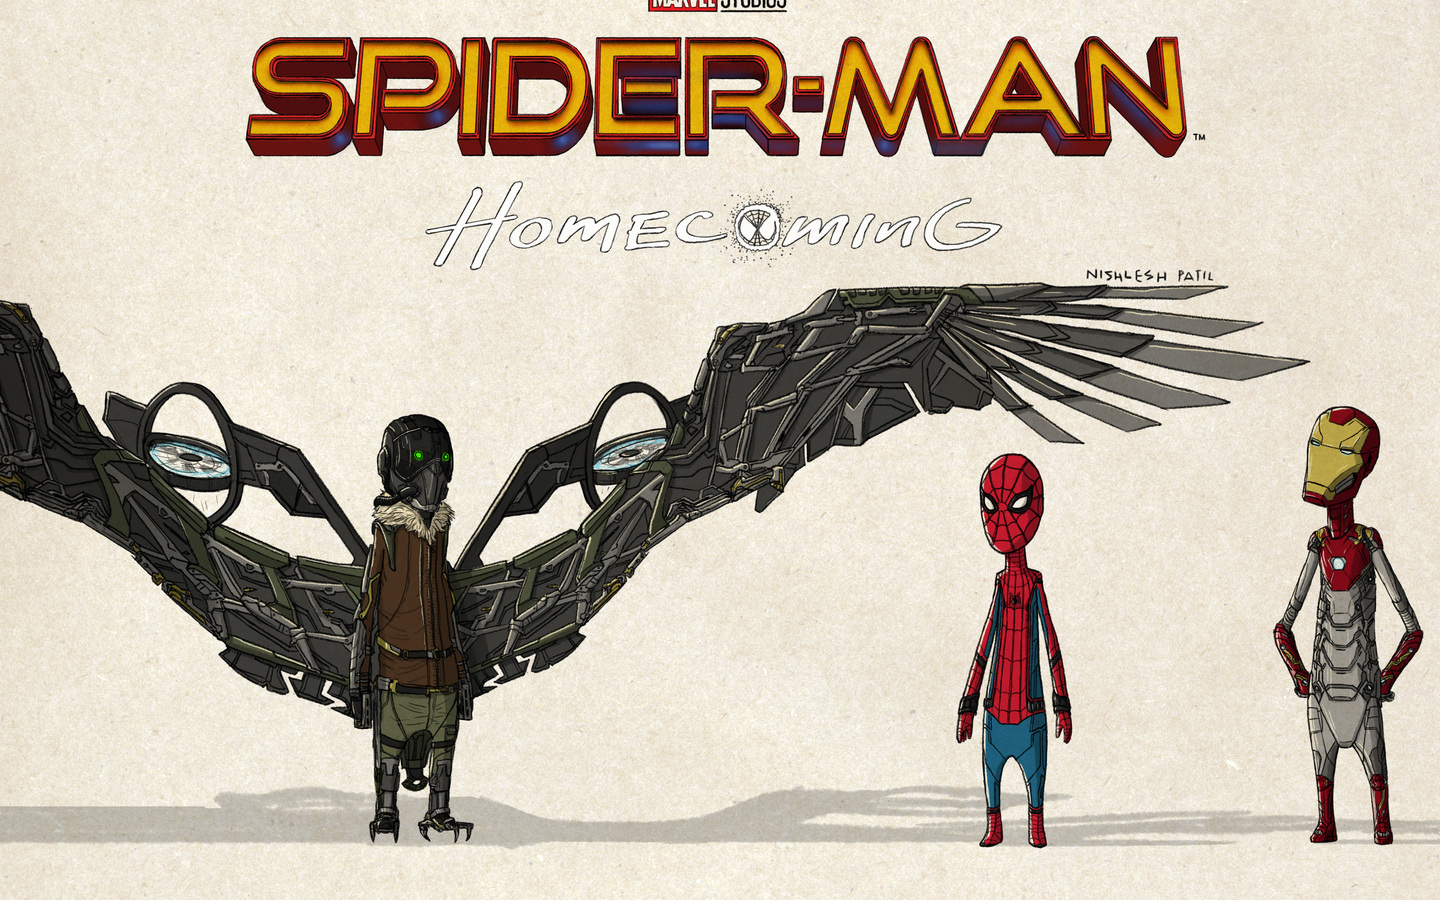 spiderman-homecoming-fan-art-in.jpg